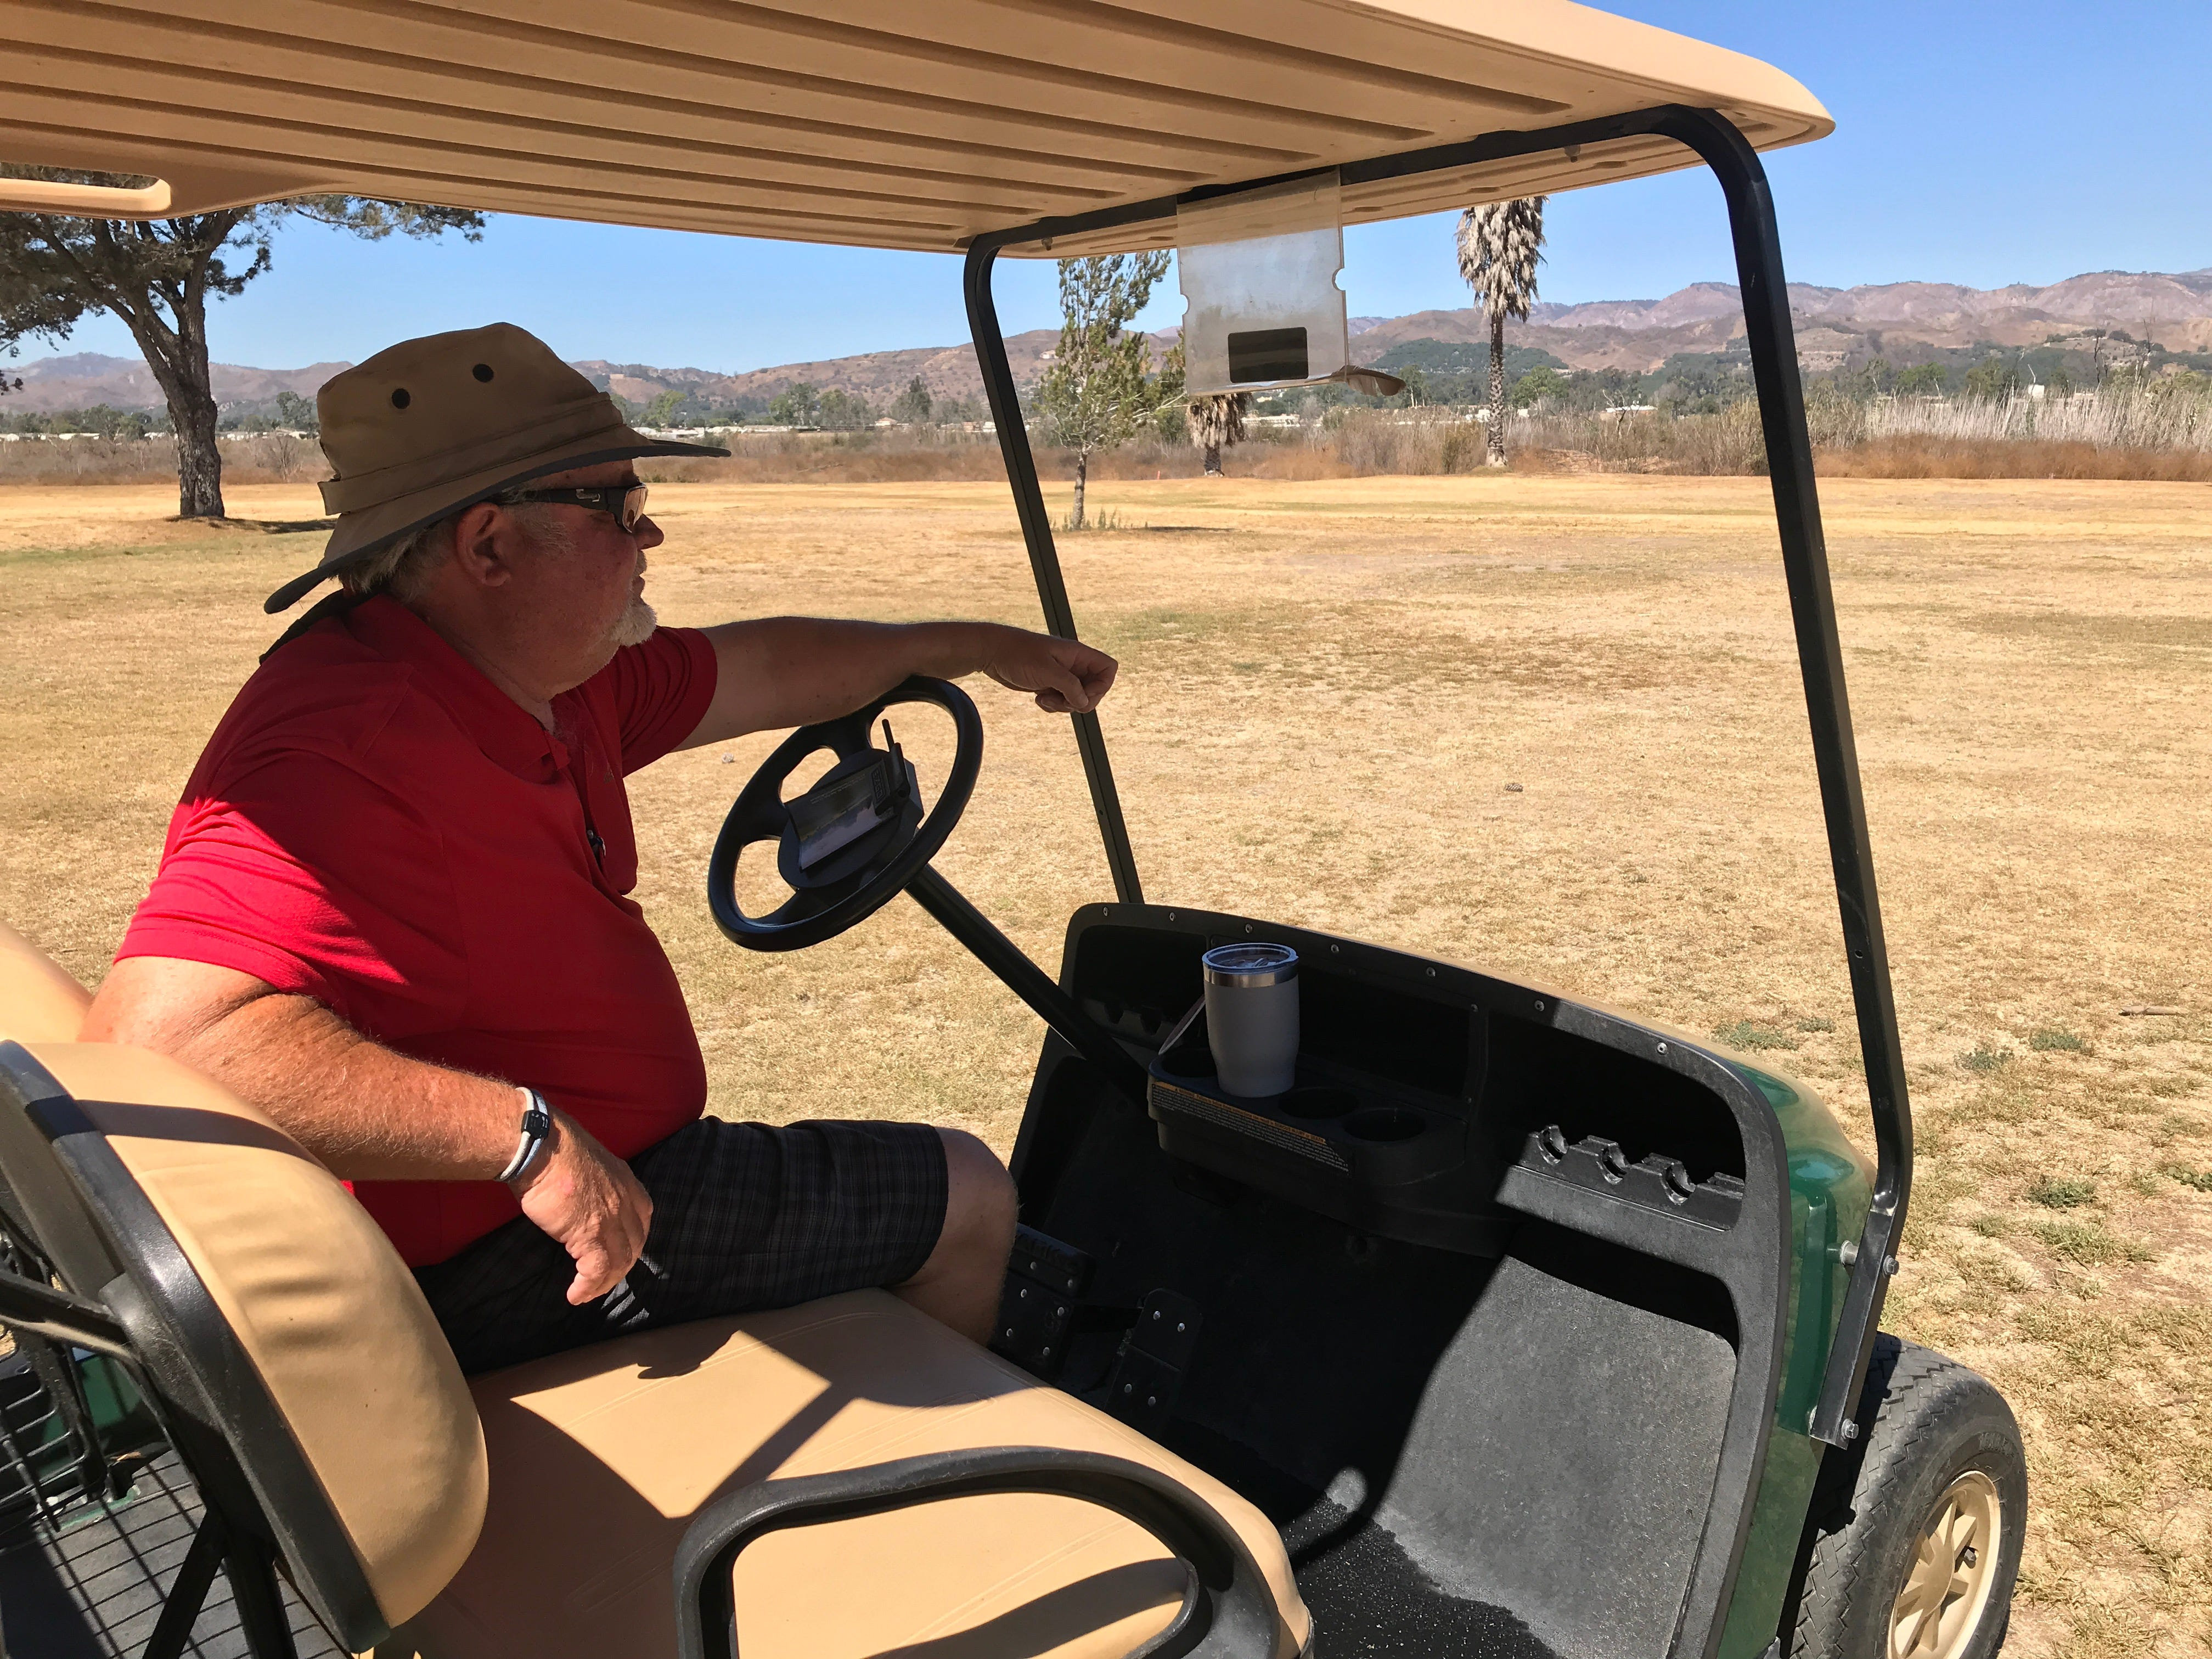 Dan Hodapp, head pro and general manager of the Mountain View Golf Course, looks out over a fairway that's gone brown for lack of water.